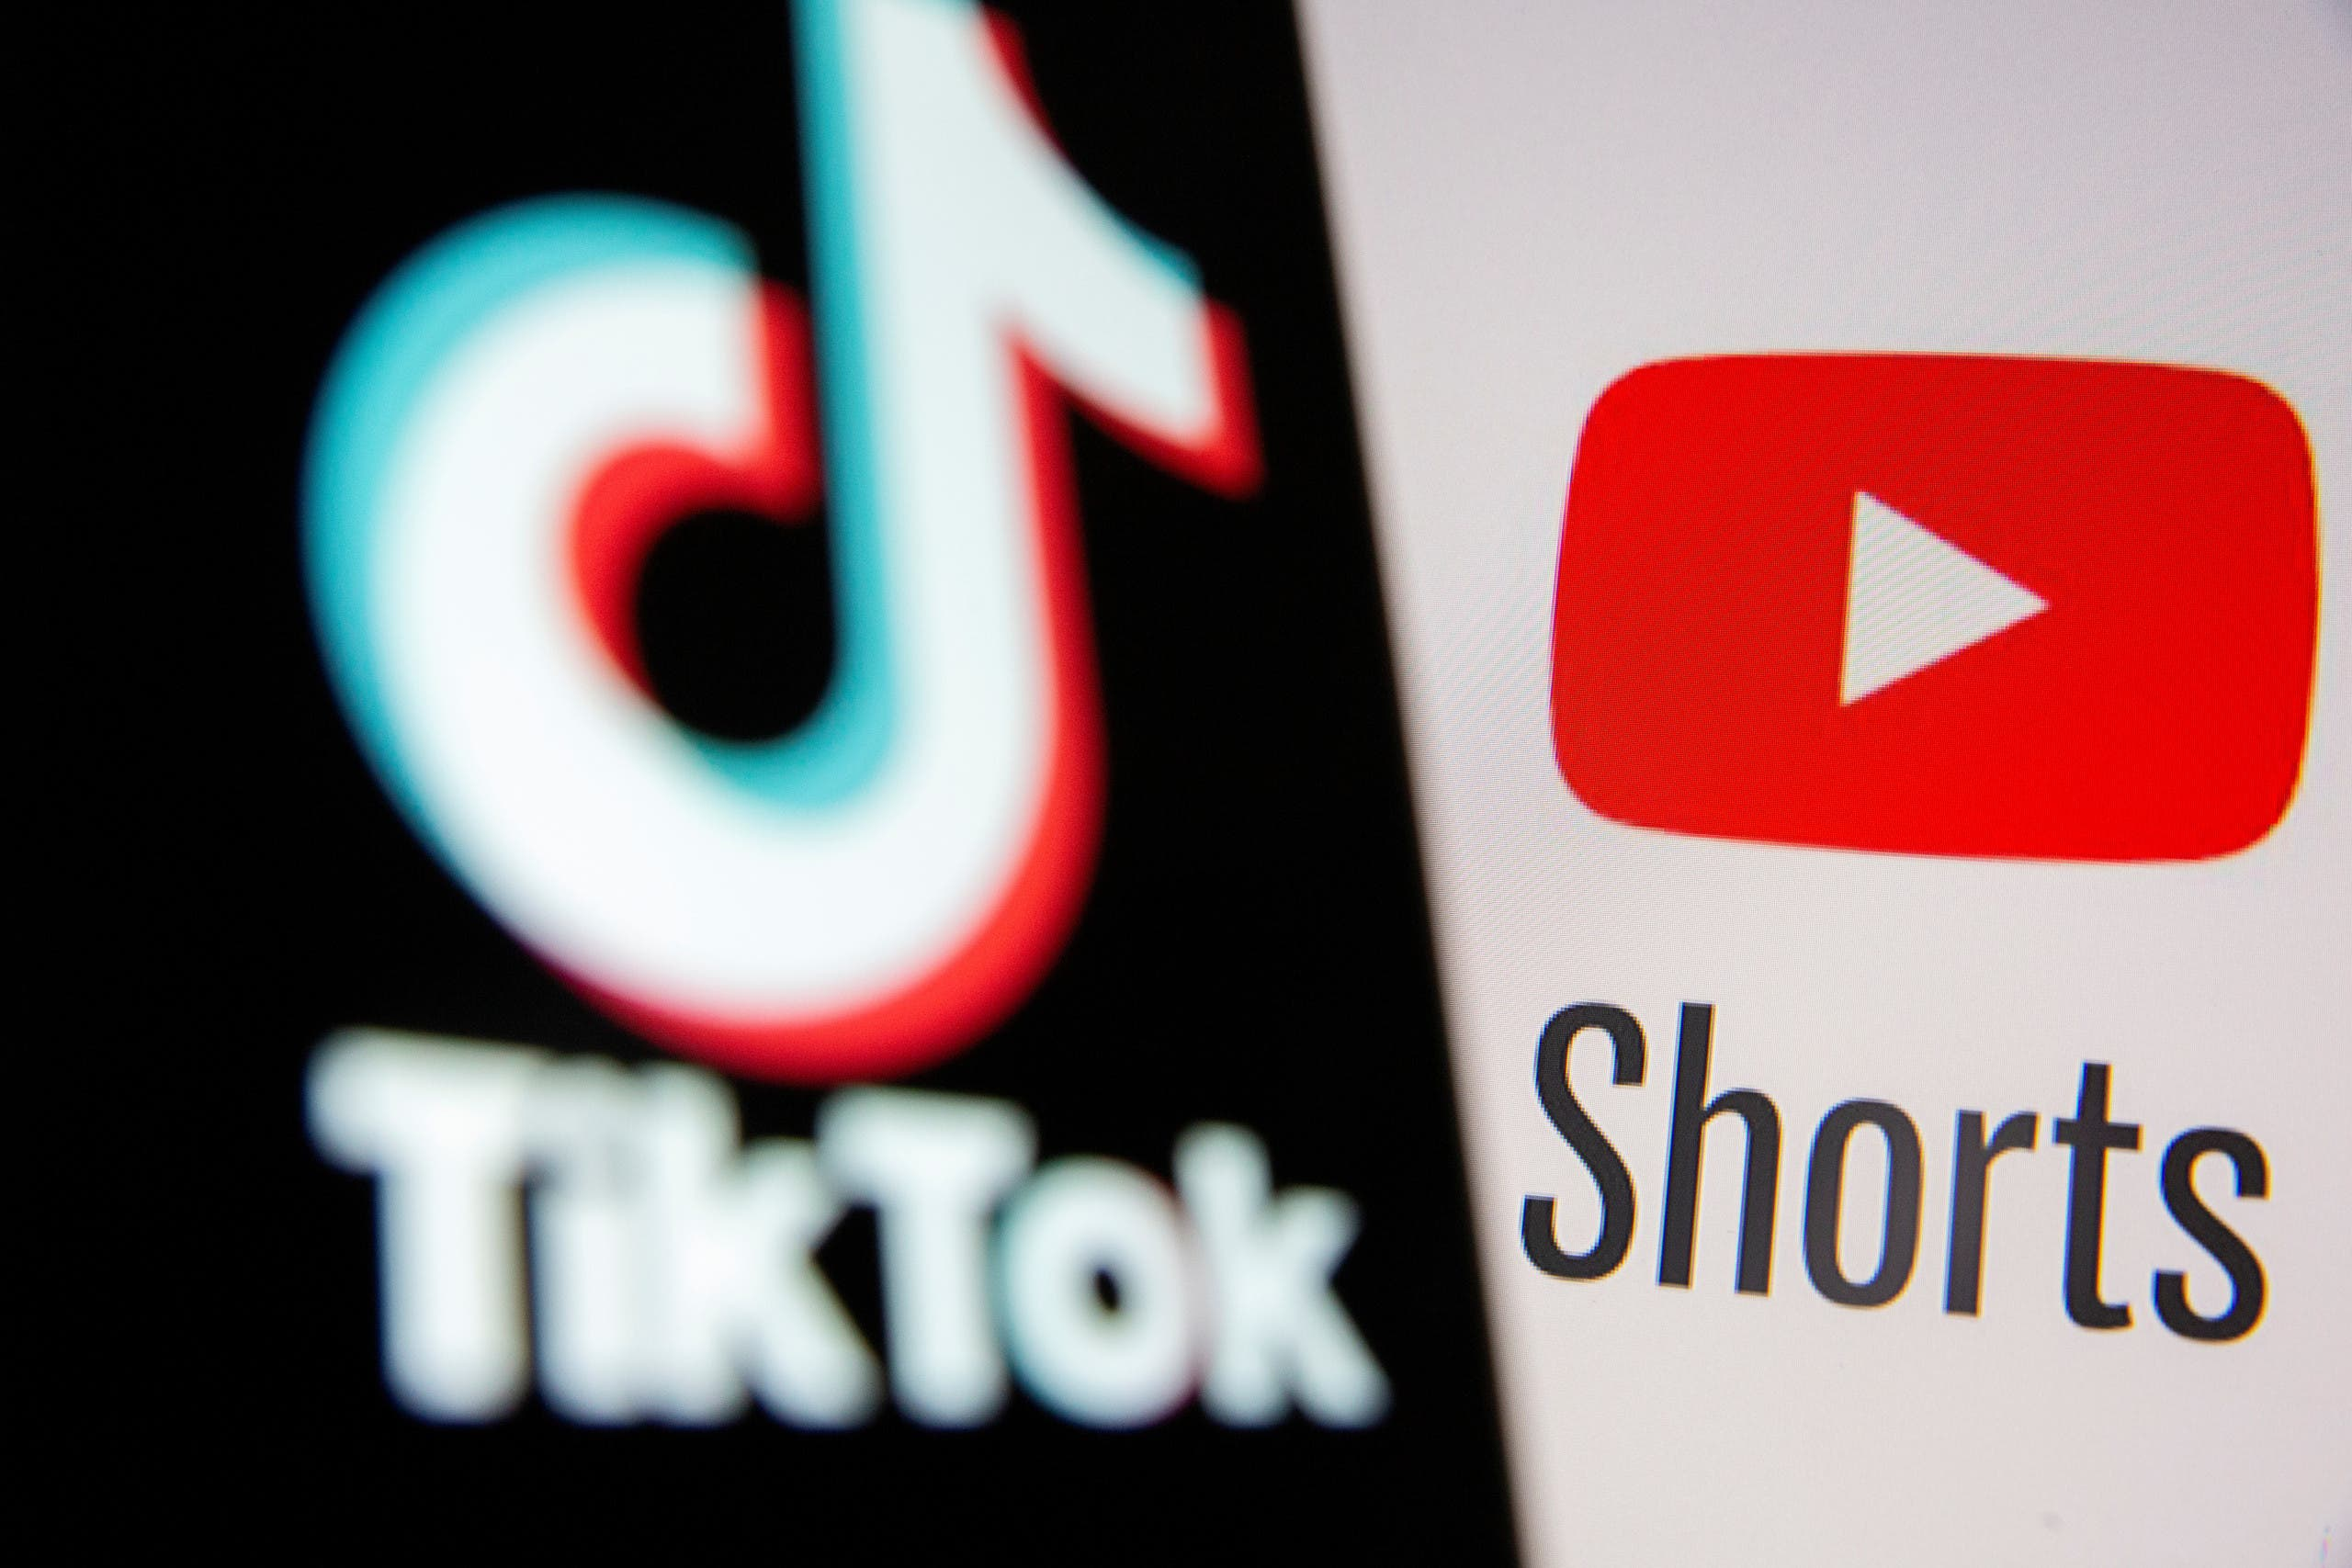 For the first time, Tik Tok surpasses YouTube in terms of average views